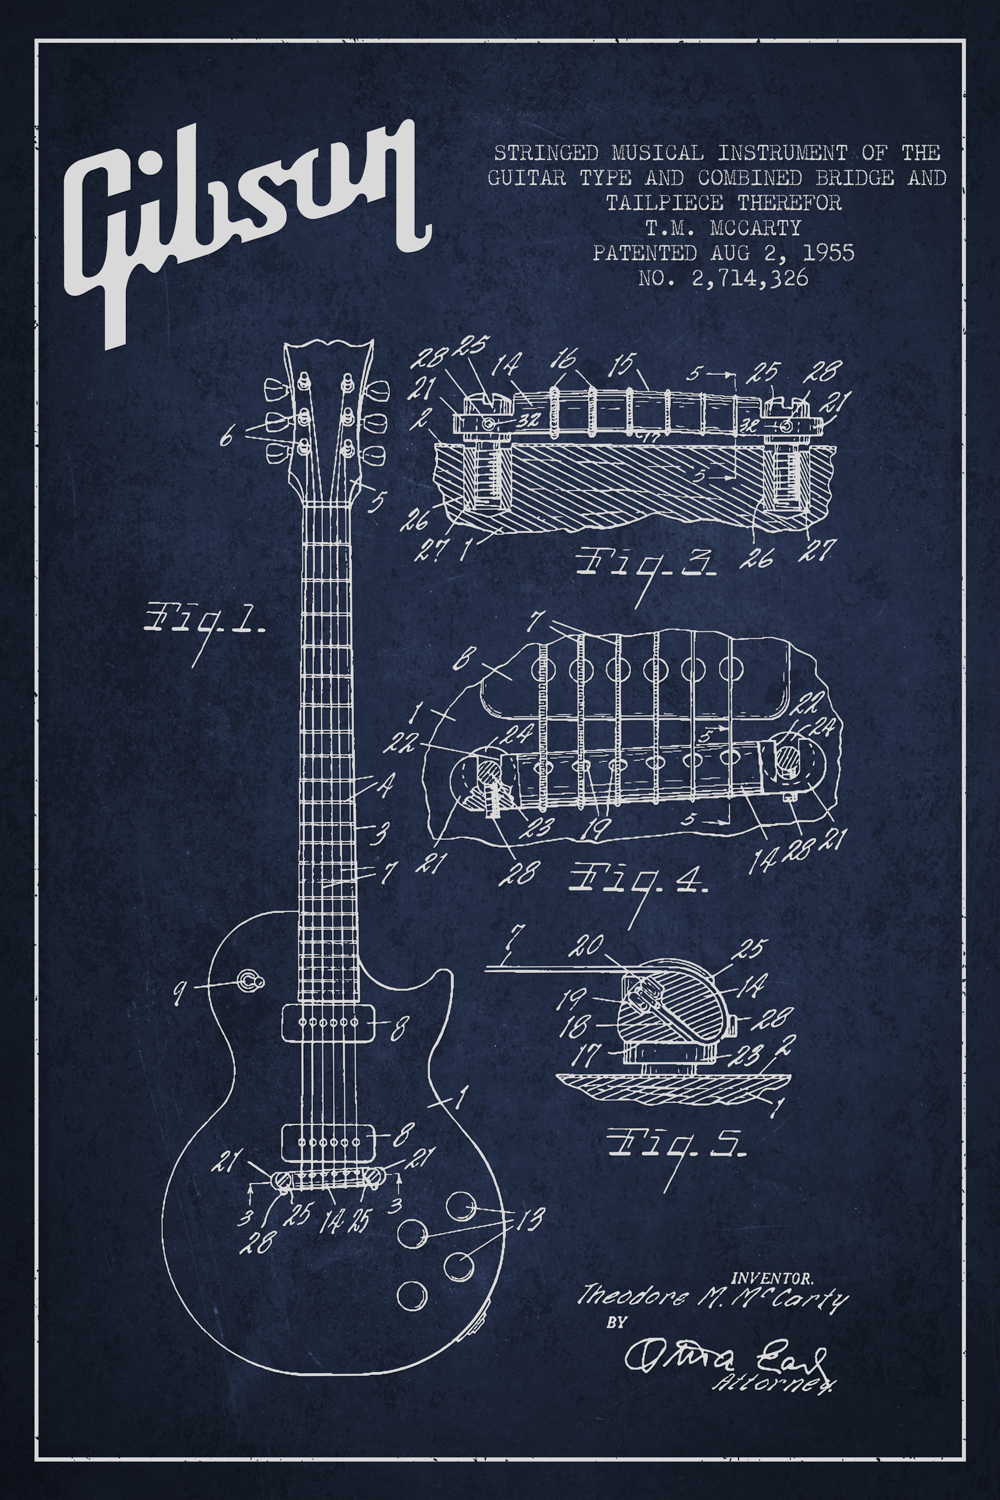 Dark blue blueprint of a Gibson guitar in white text